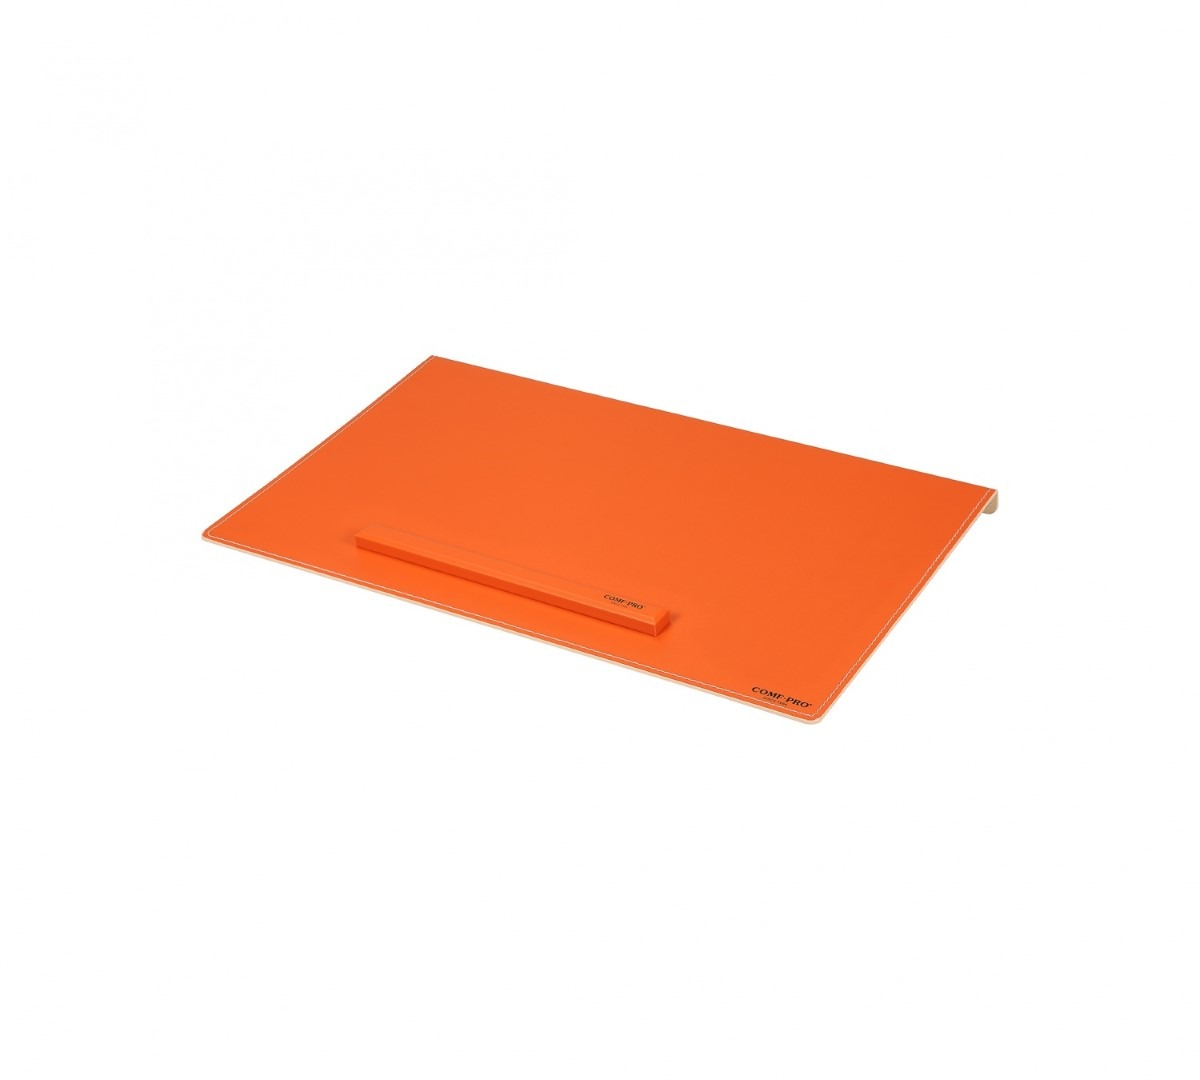 Ergo-Intelligent-Desktop-Pad-Orange1